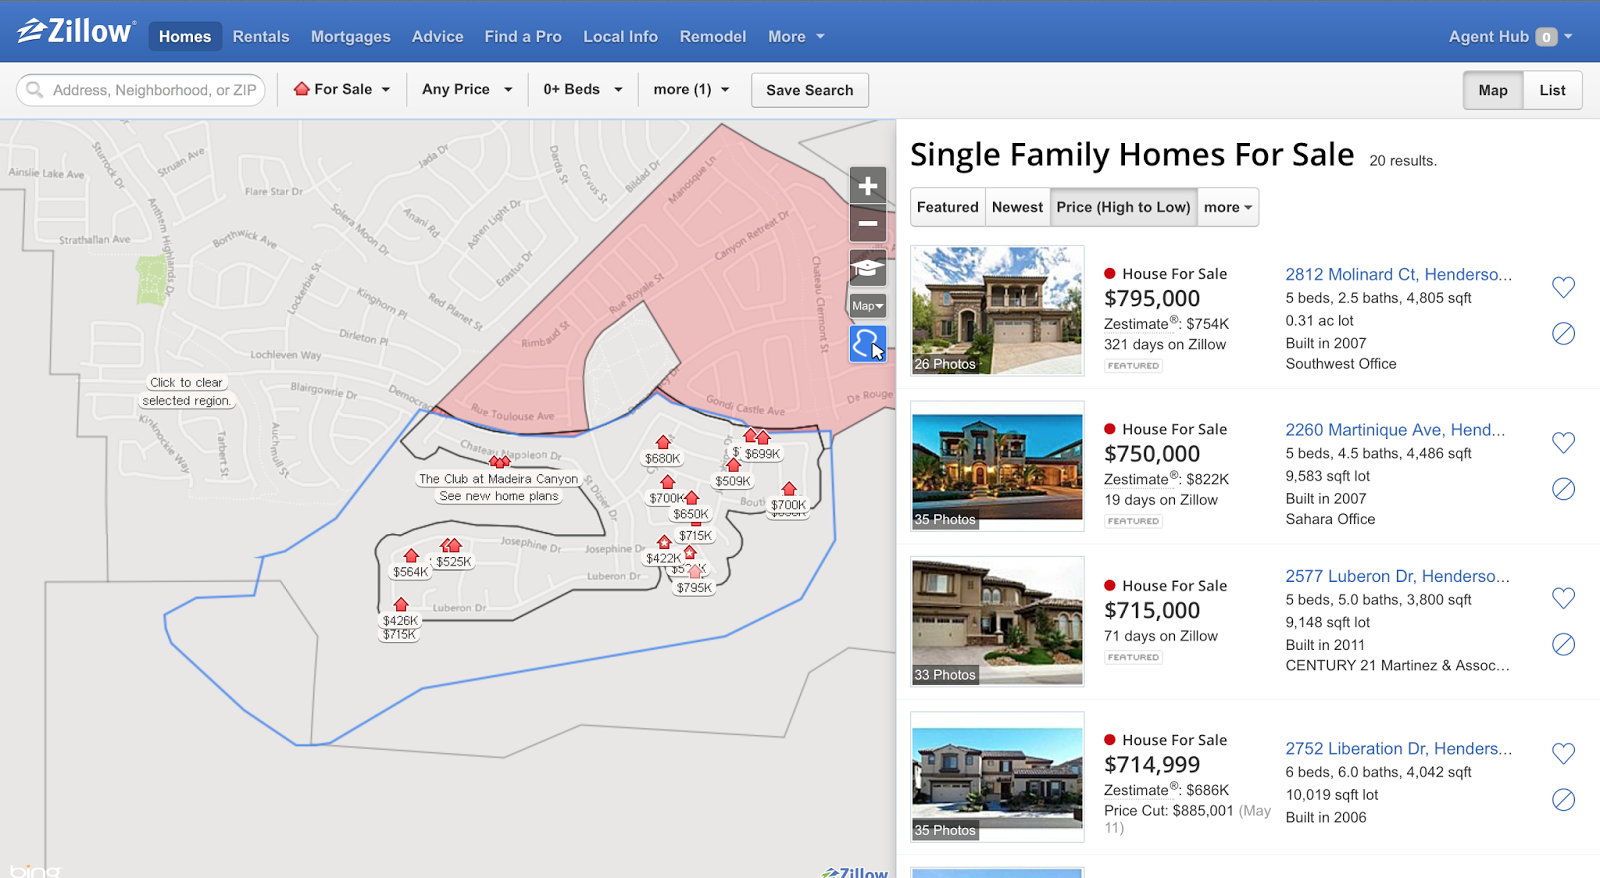 Is Zillow Bad for Home Buyers? on